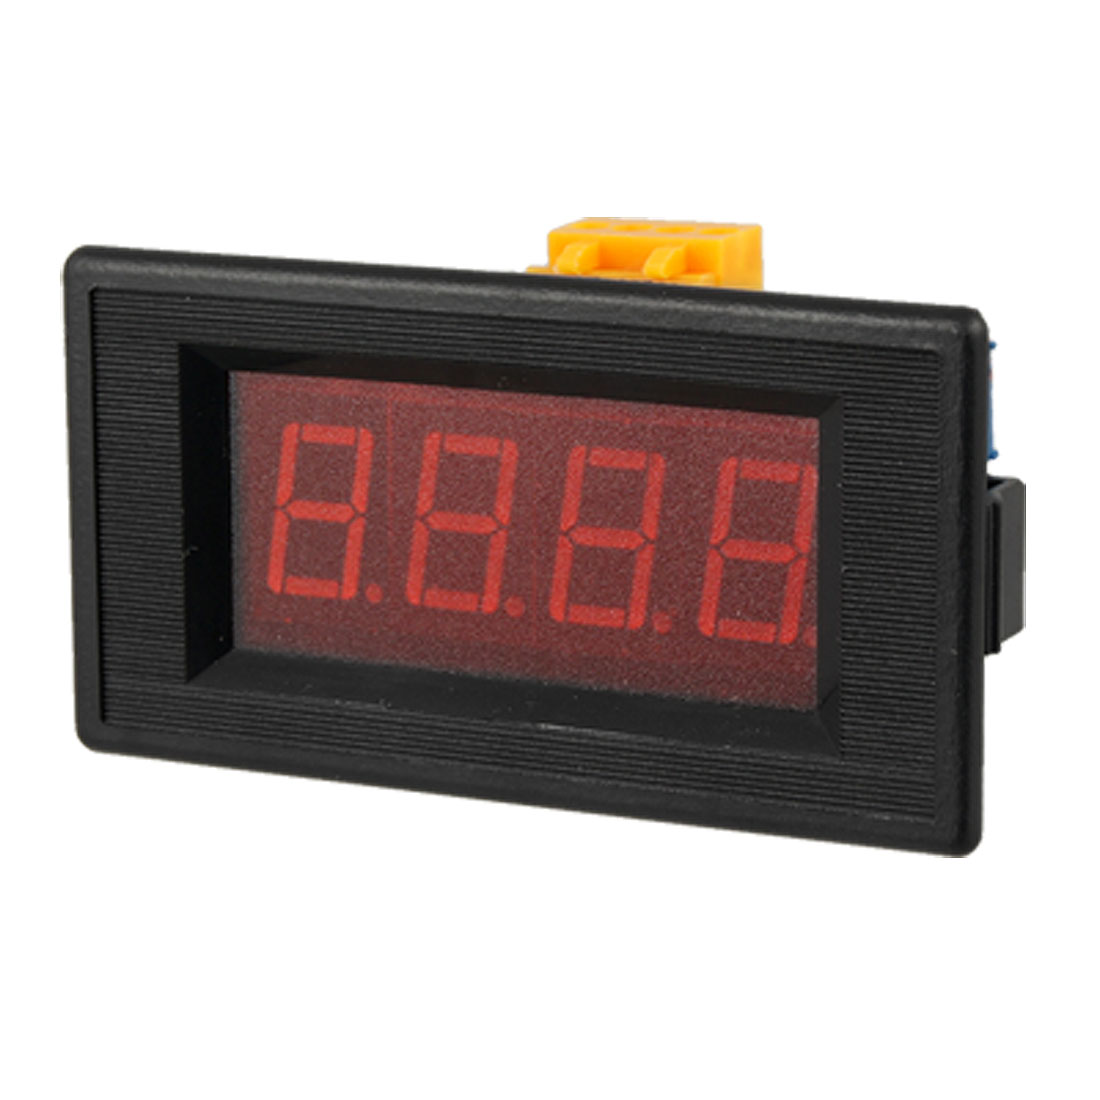 DC2A 3 1/2 Digital Red LED Panel Mount Ammeter